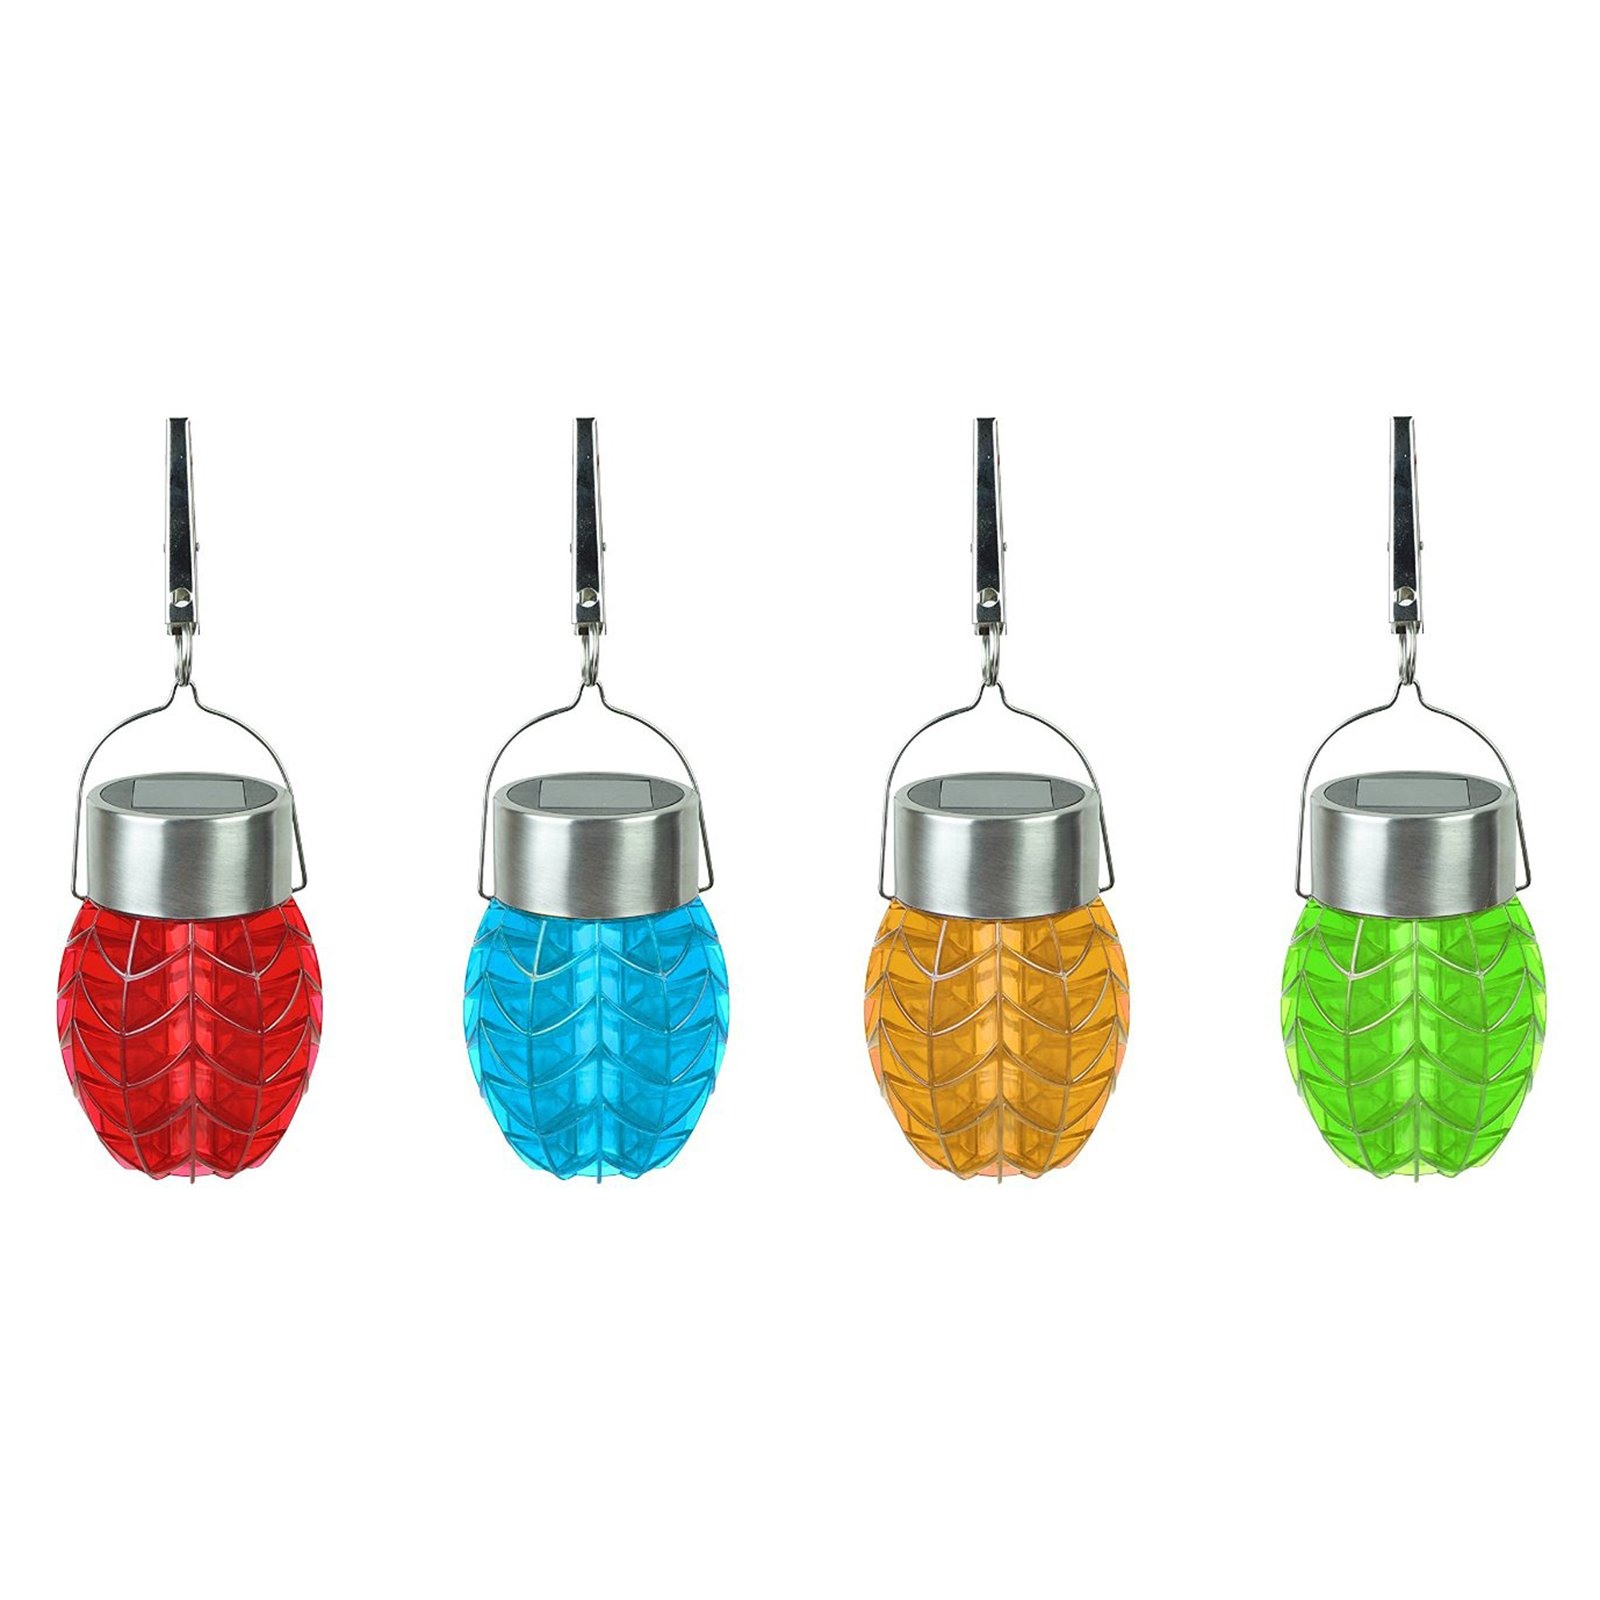 Moonrays 91574 Solar Powered Color-Changing LED Umbrella Party Lights, 8pk